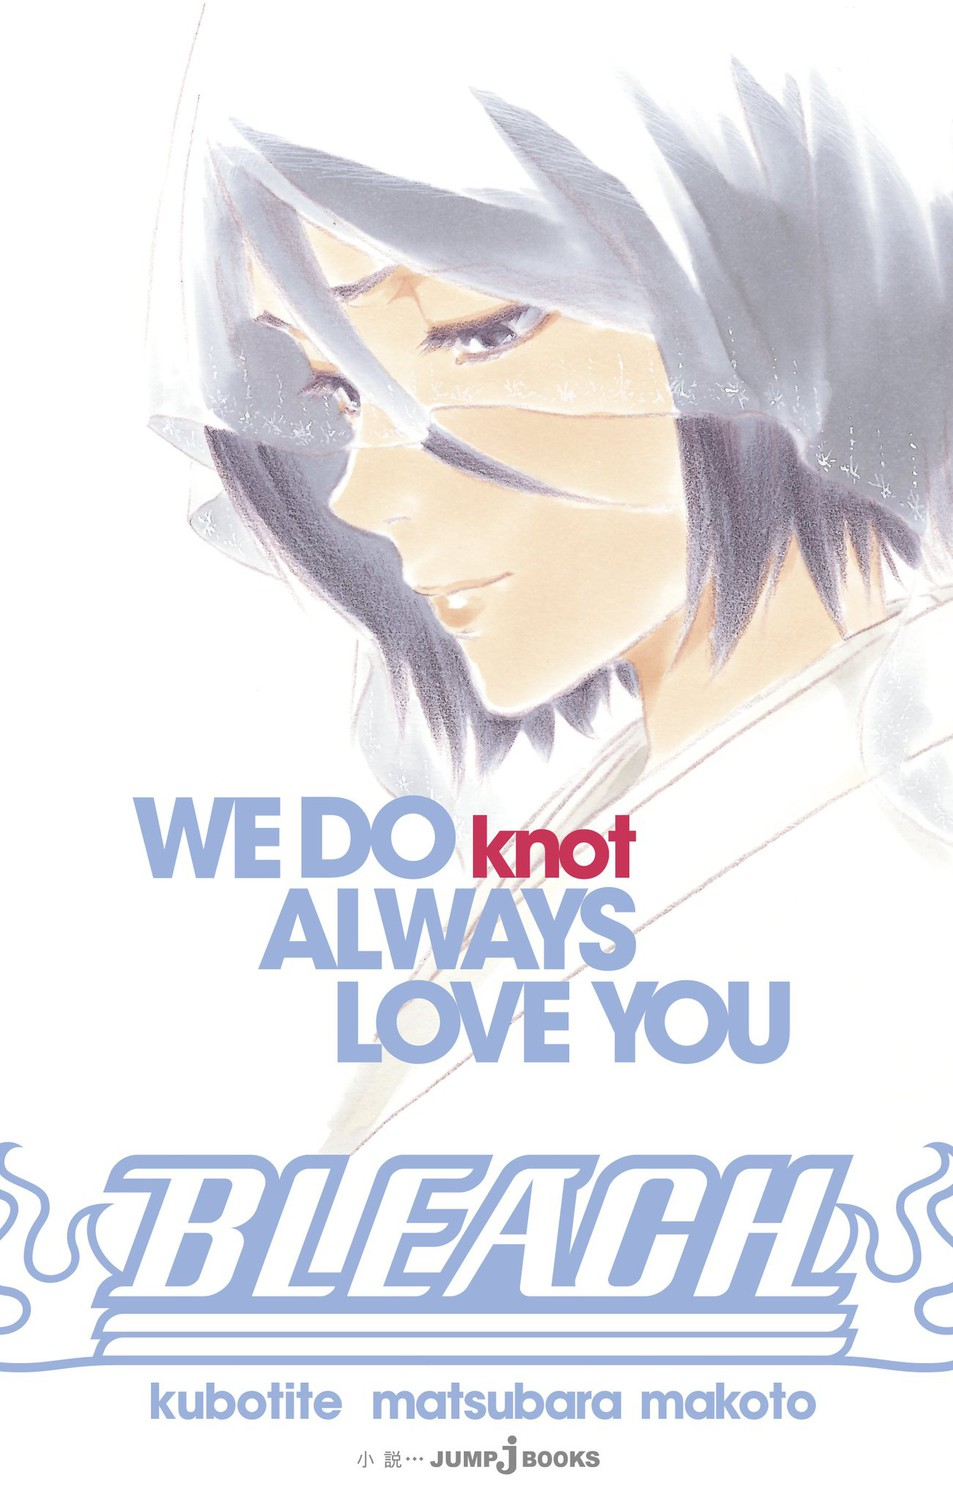 bleach-novel-we-do-knot-always-love-you